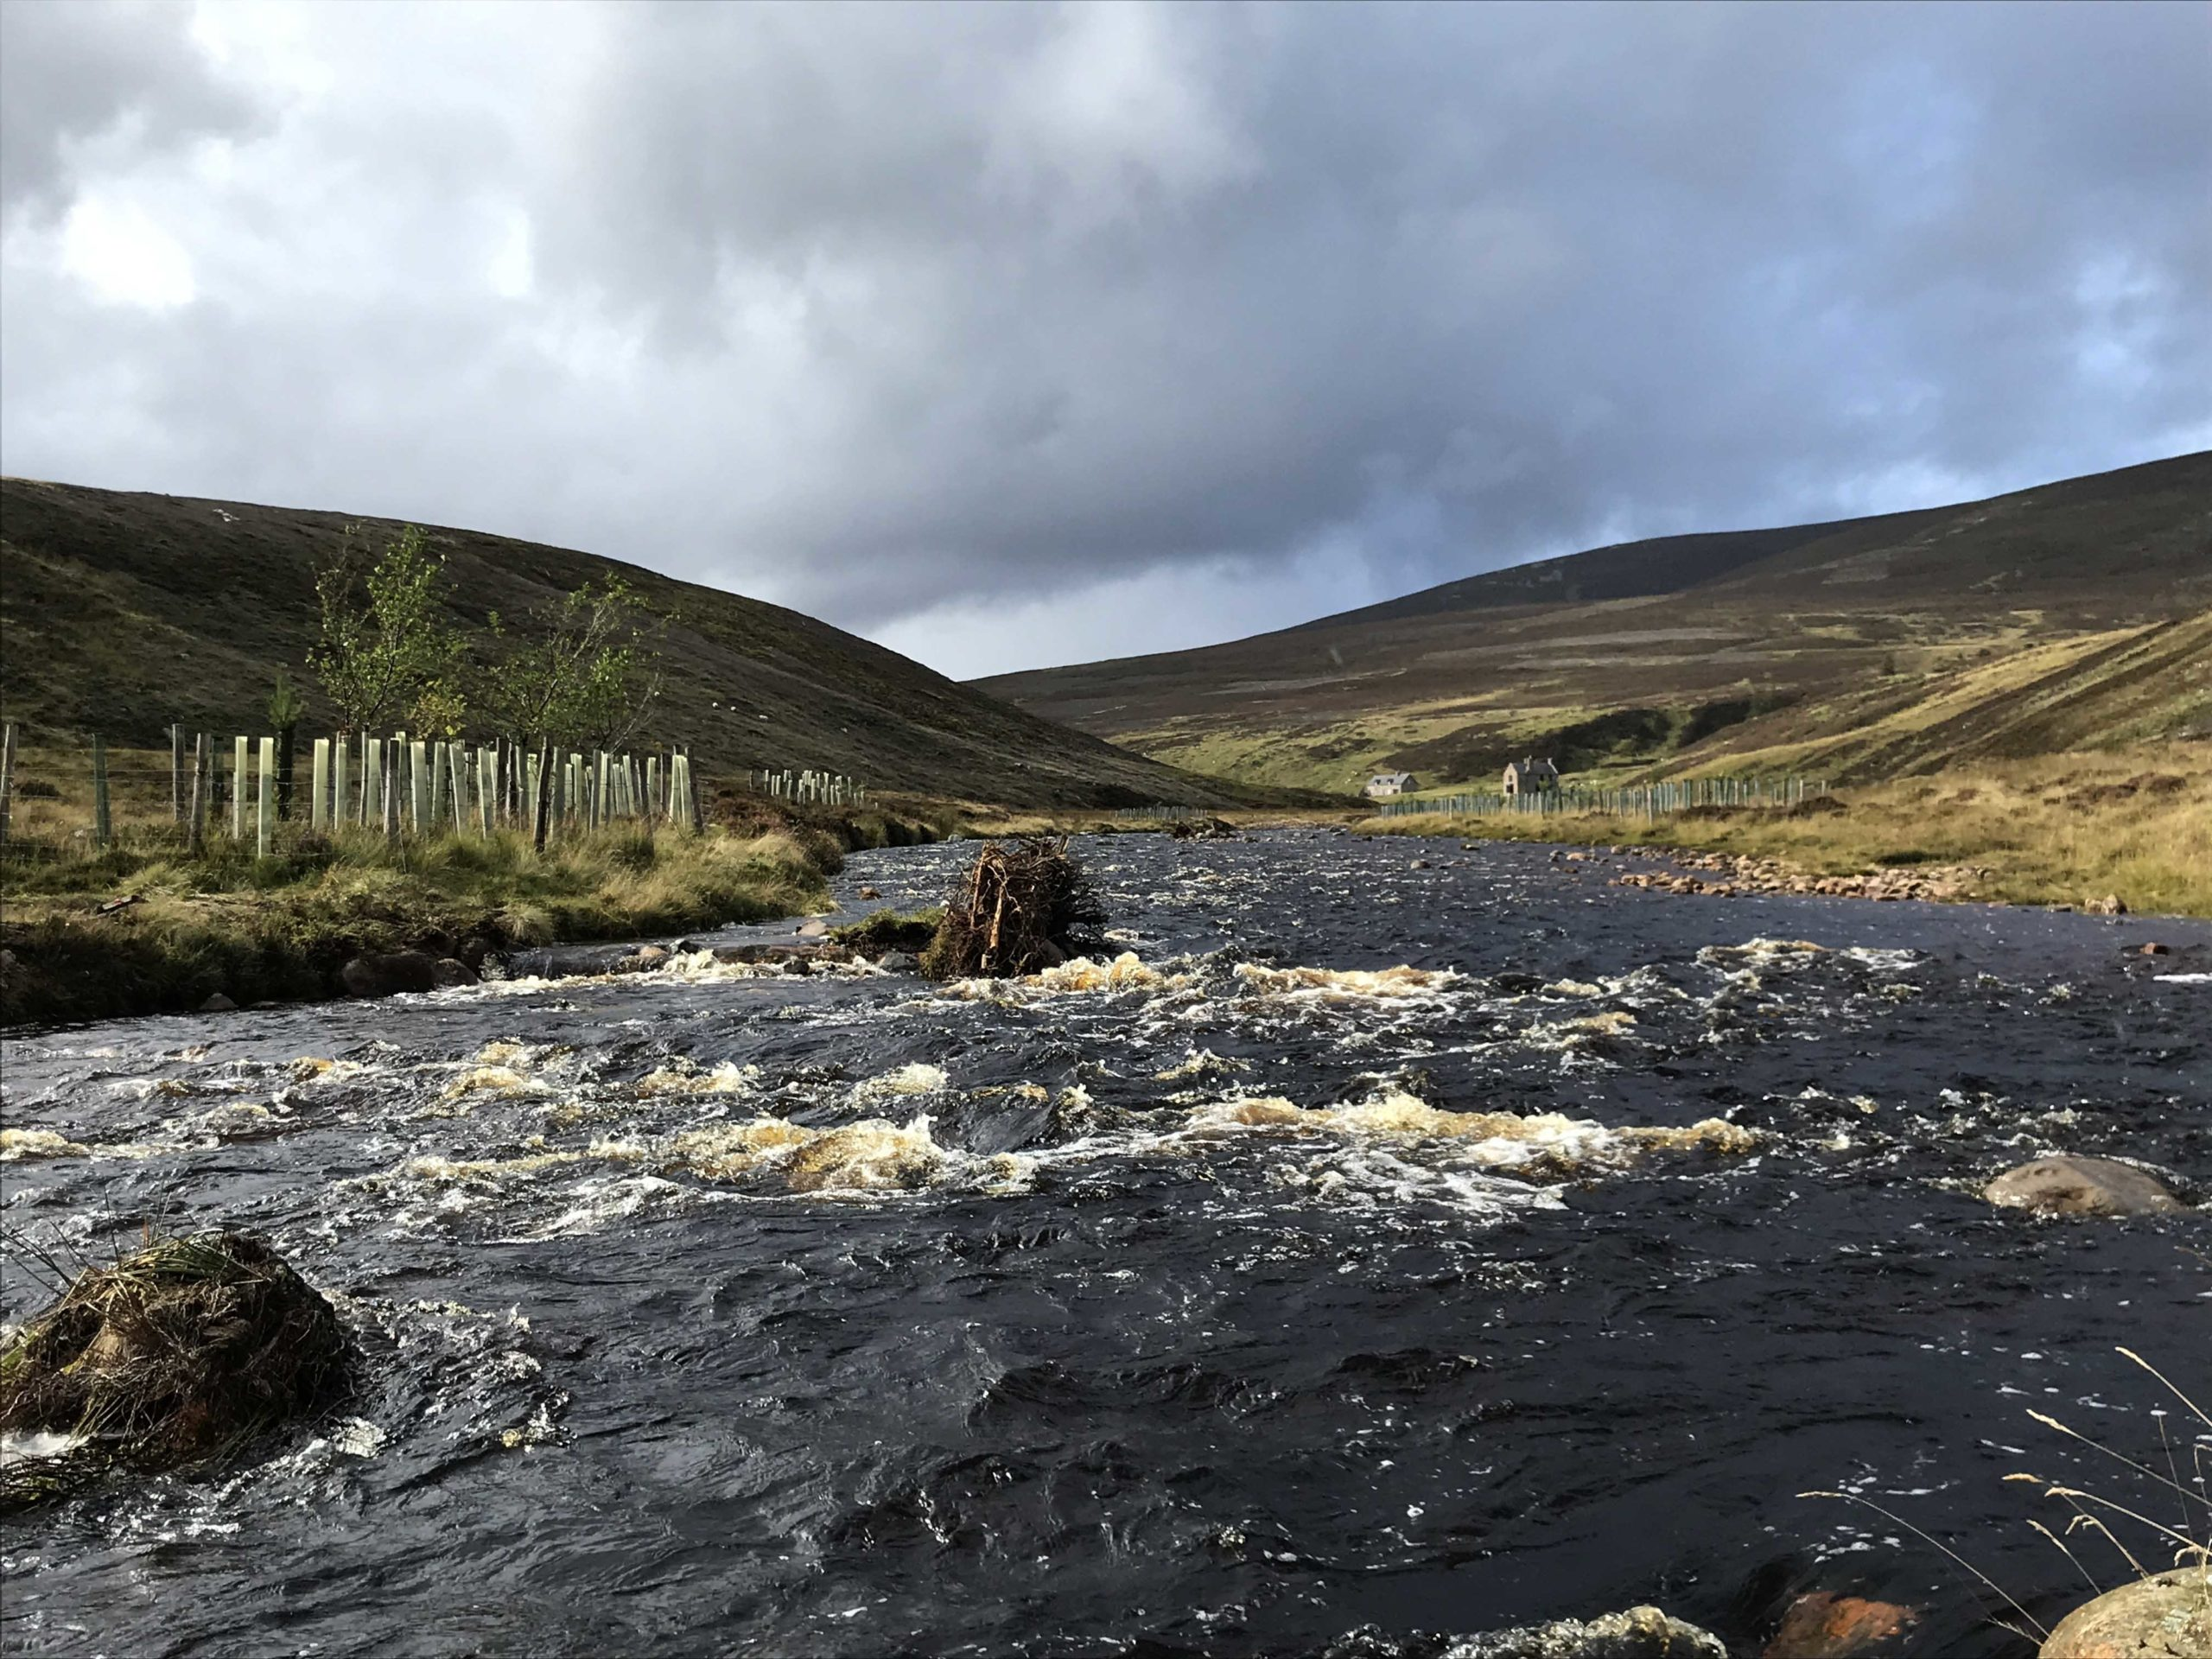 Tree-planting in the upper River Dee catchment